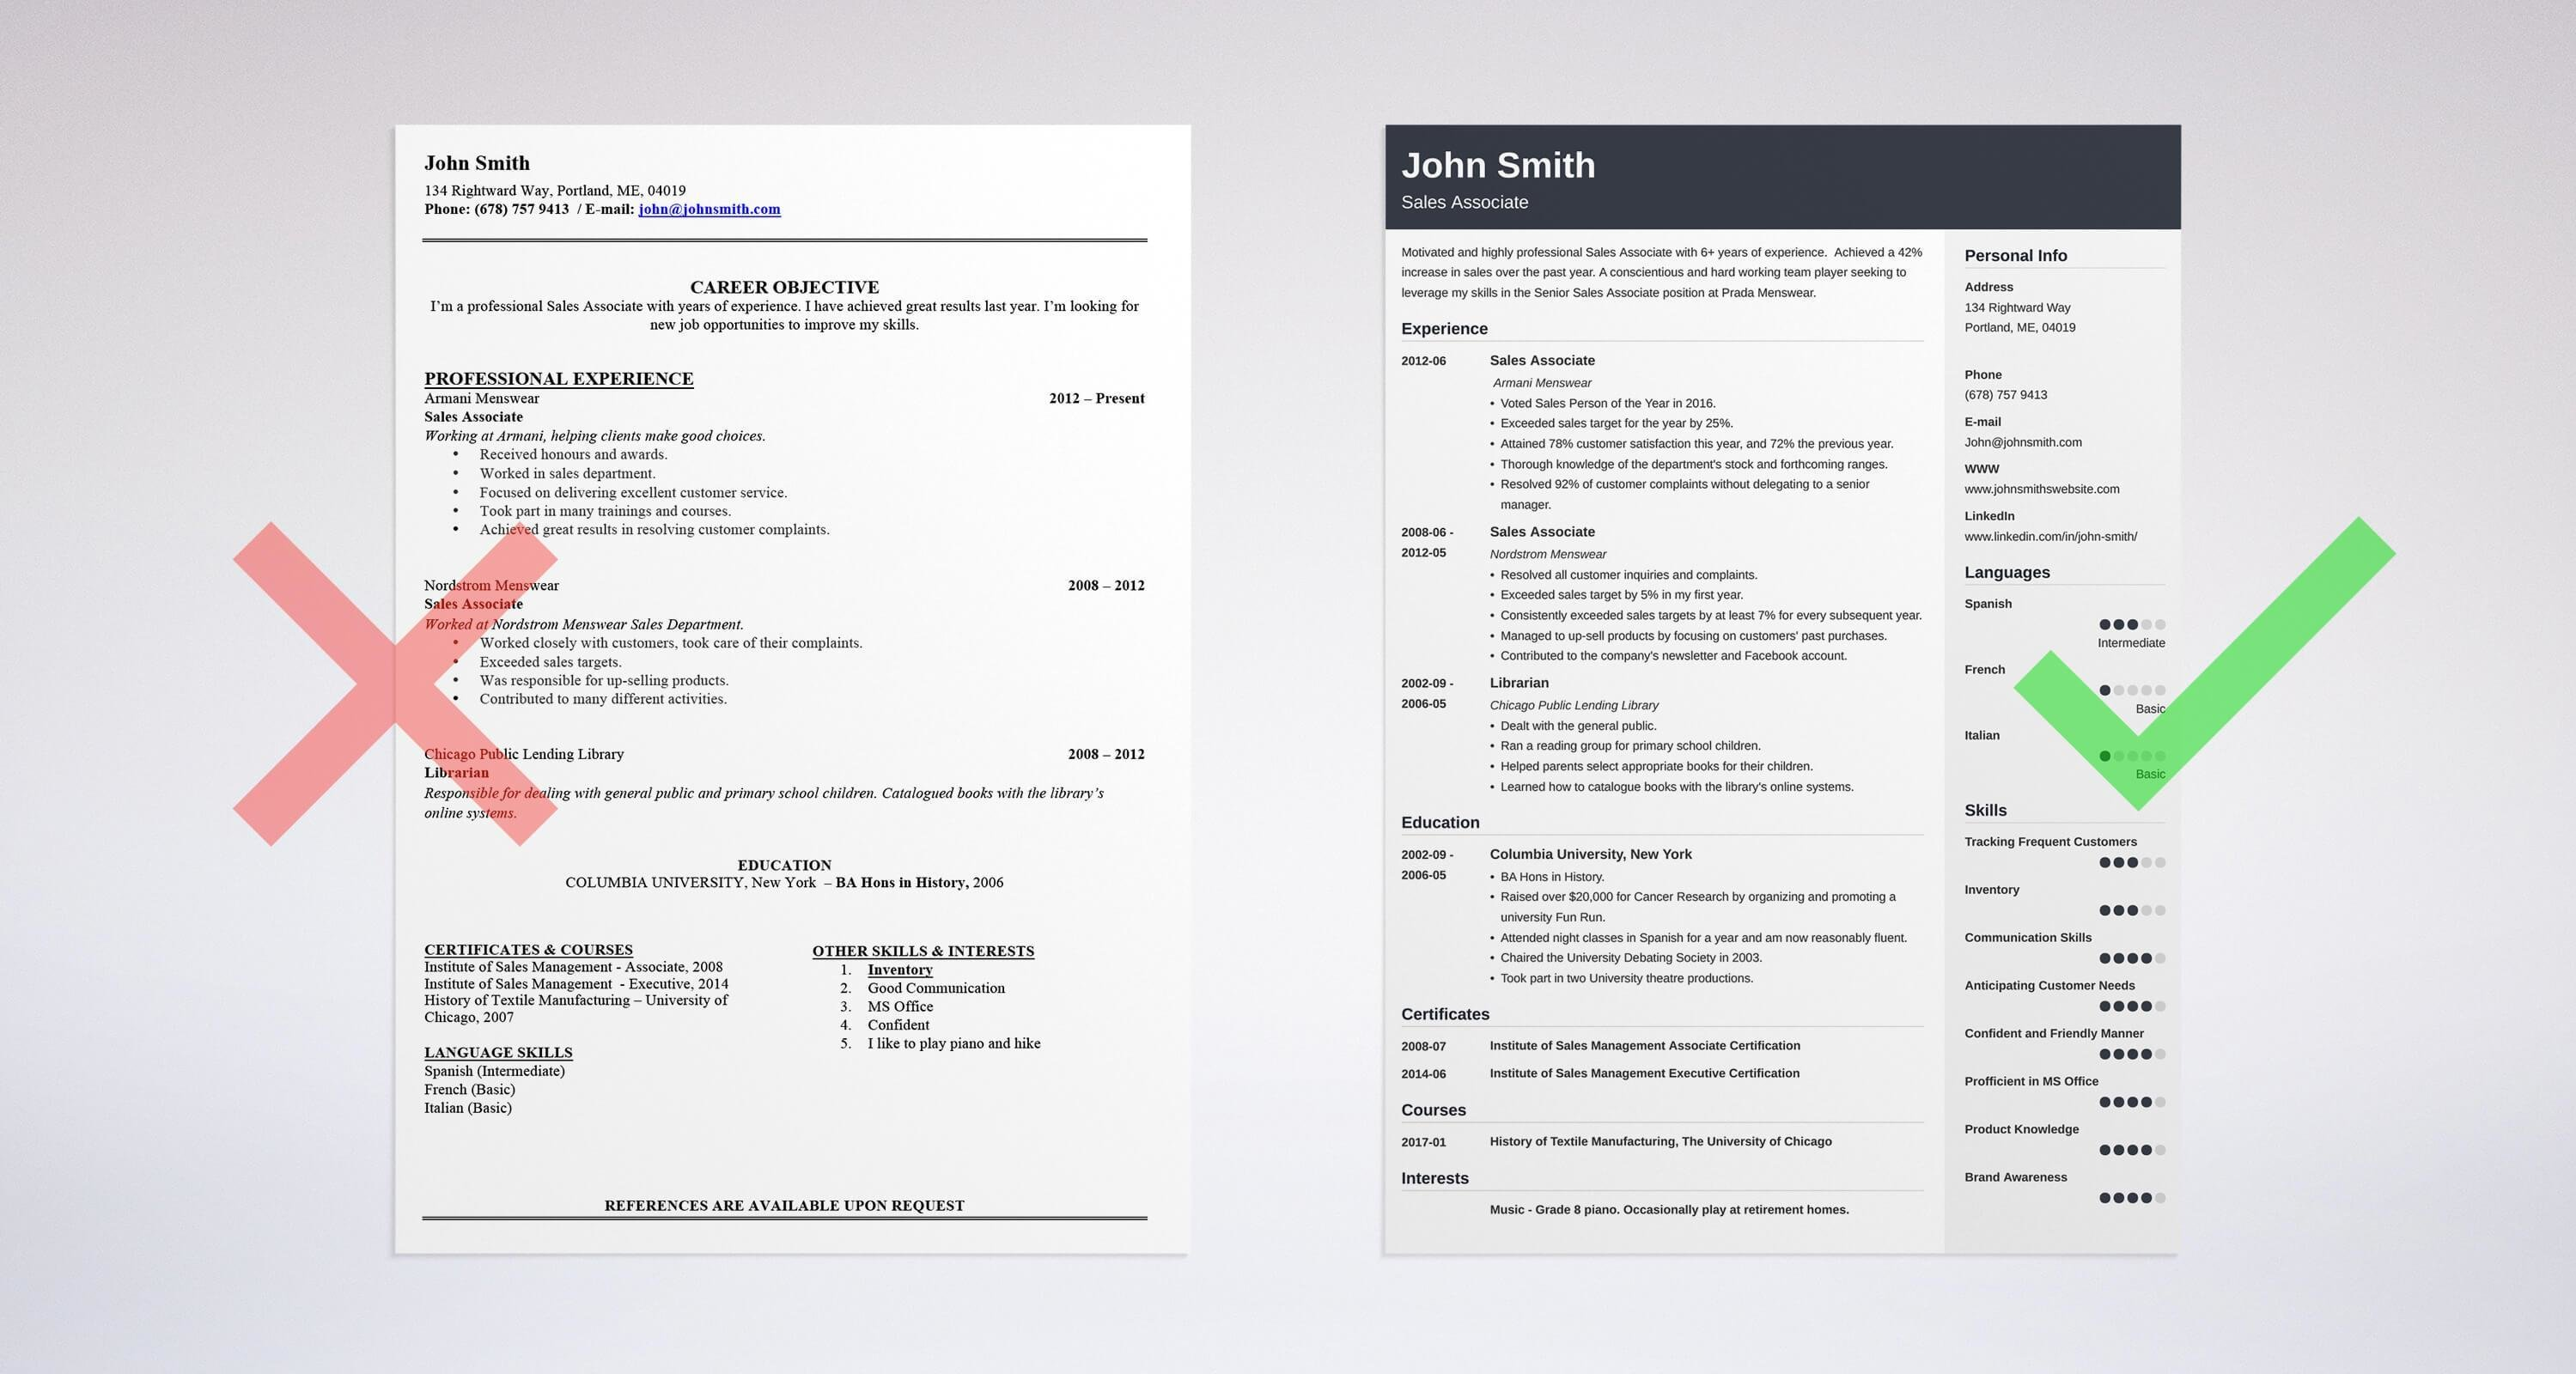 Exceptional Professional Resume Summary: 30 Examples Of Statements [+How To]